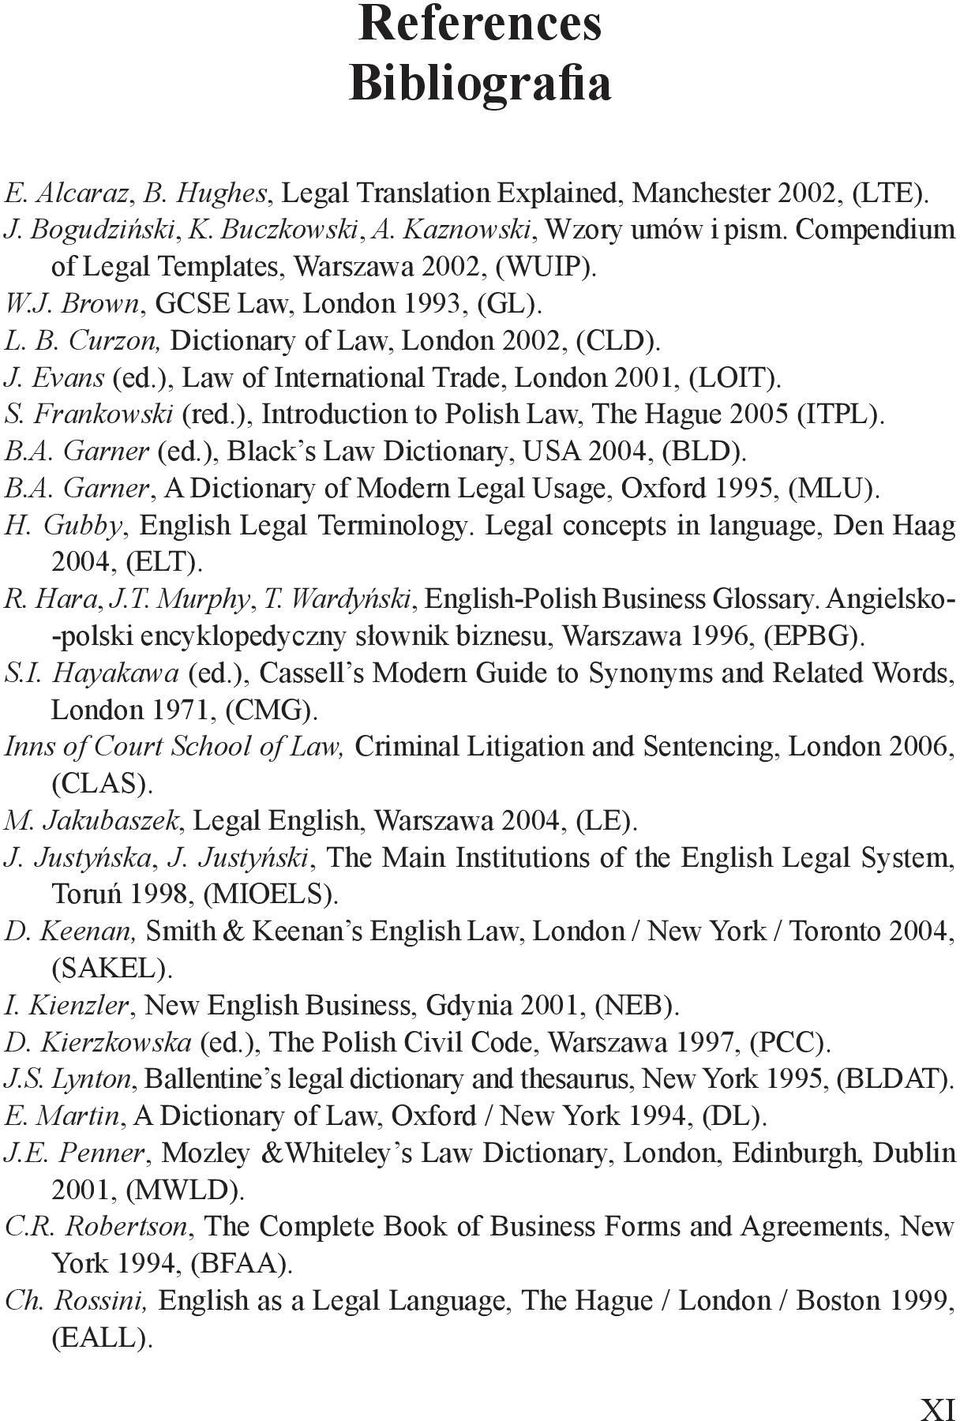 ), Law of International Trade, London 2001, (LOIT). S. Frankowski (red.), Introduction to Polish Law, The Hague 2005 (ITPL). B.A. Garner (ed.), Black s Law Dictionary, USA 2004, (BLD). B.A. Garner, A Dictionary of Modern Legal Usage, Oxford 1995, (MLU).